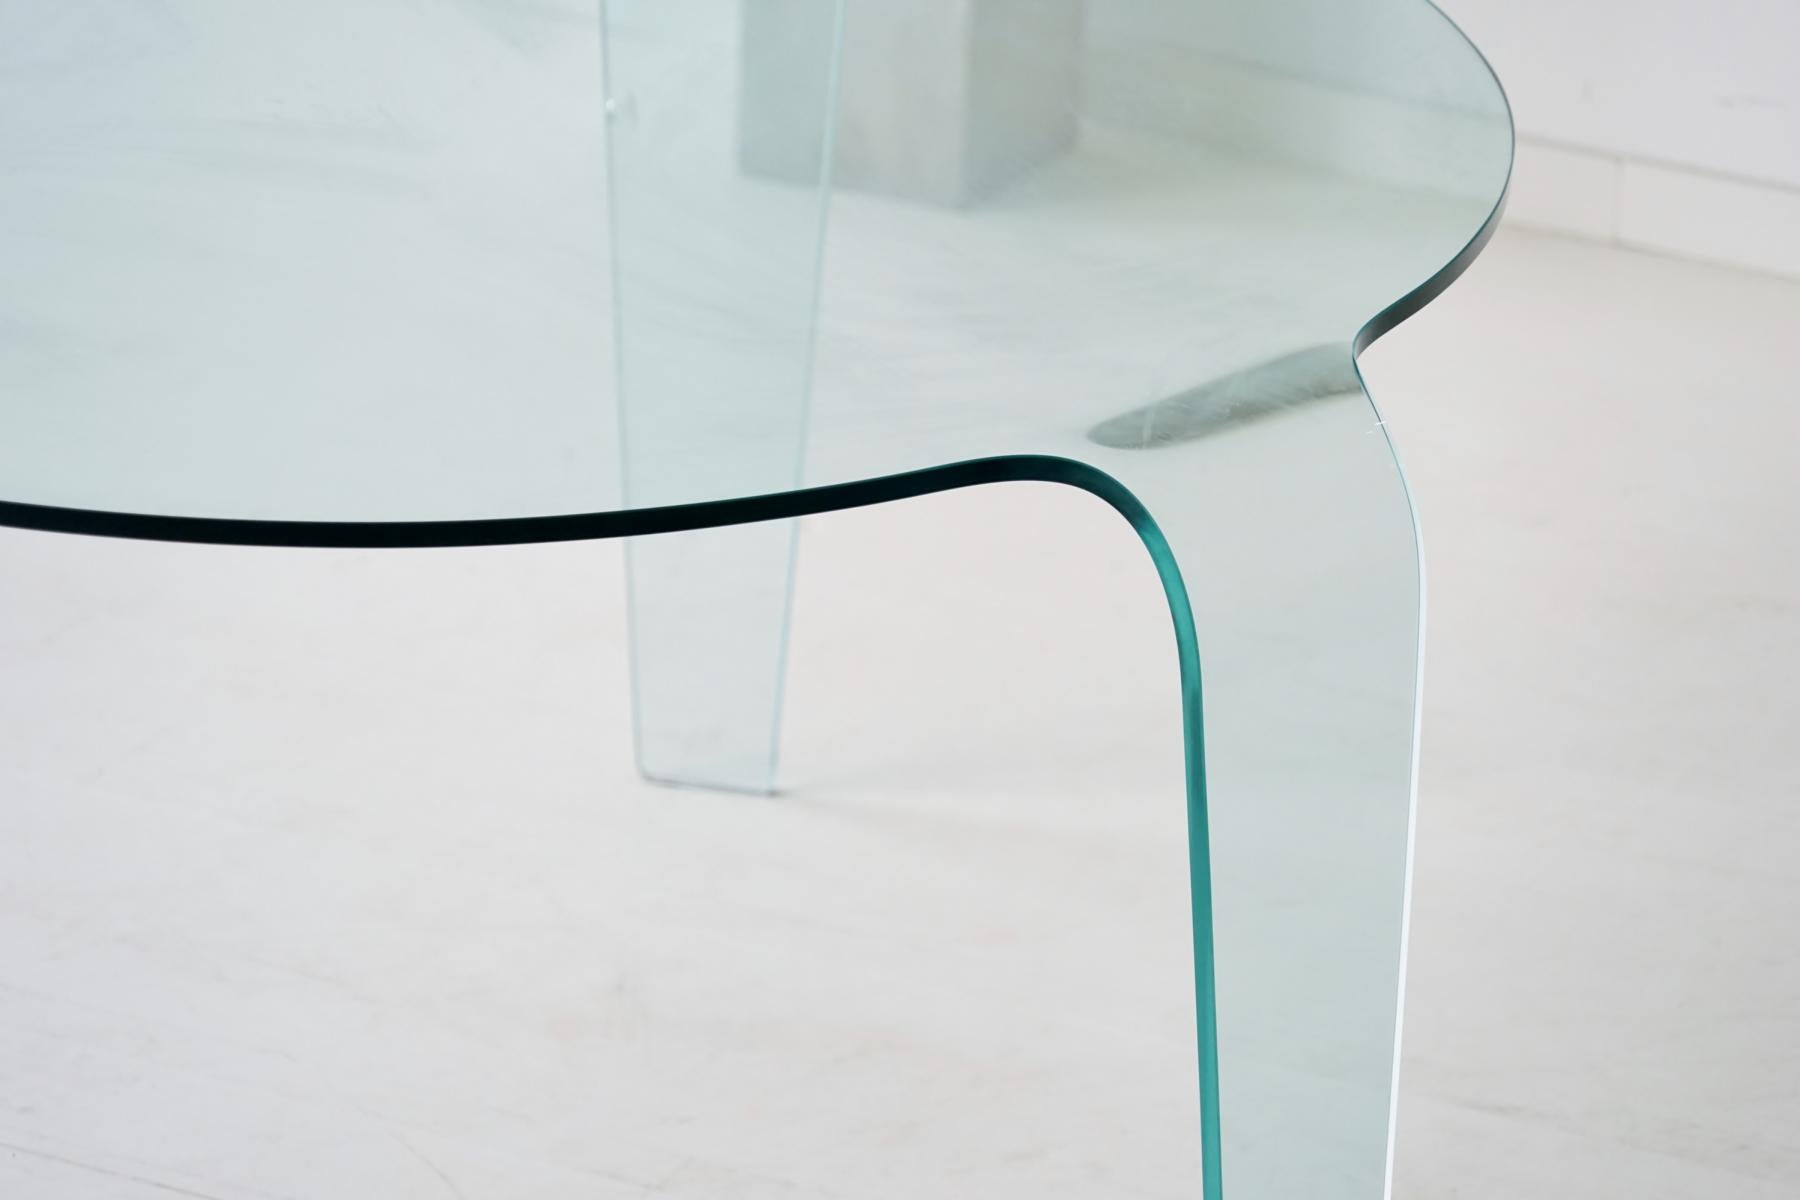 Roche Bobois Glass Dining Table From One Piece Three Legs Design